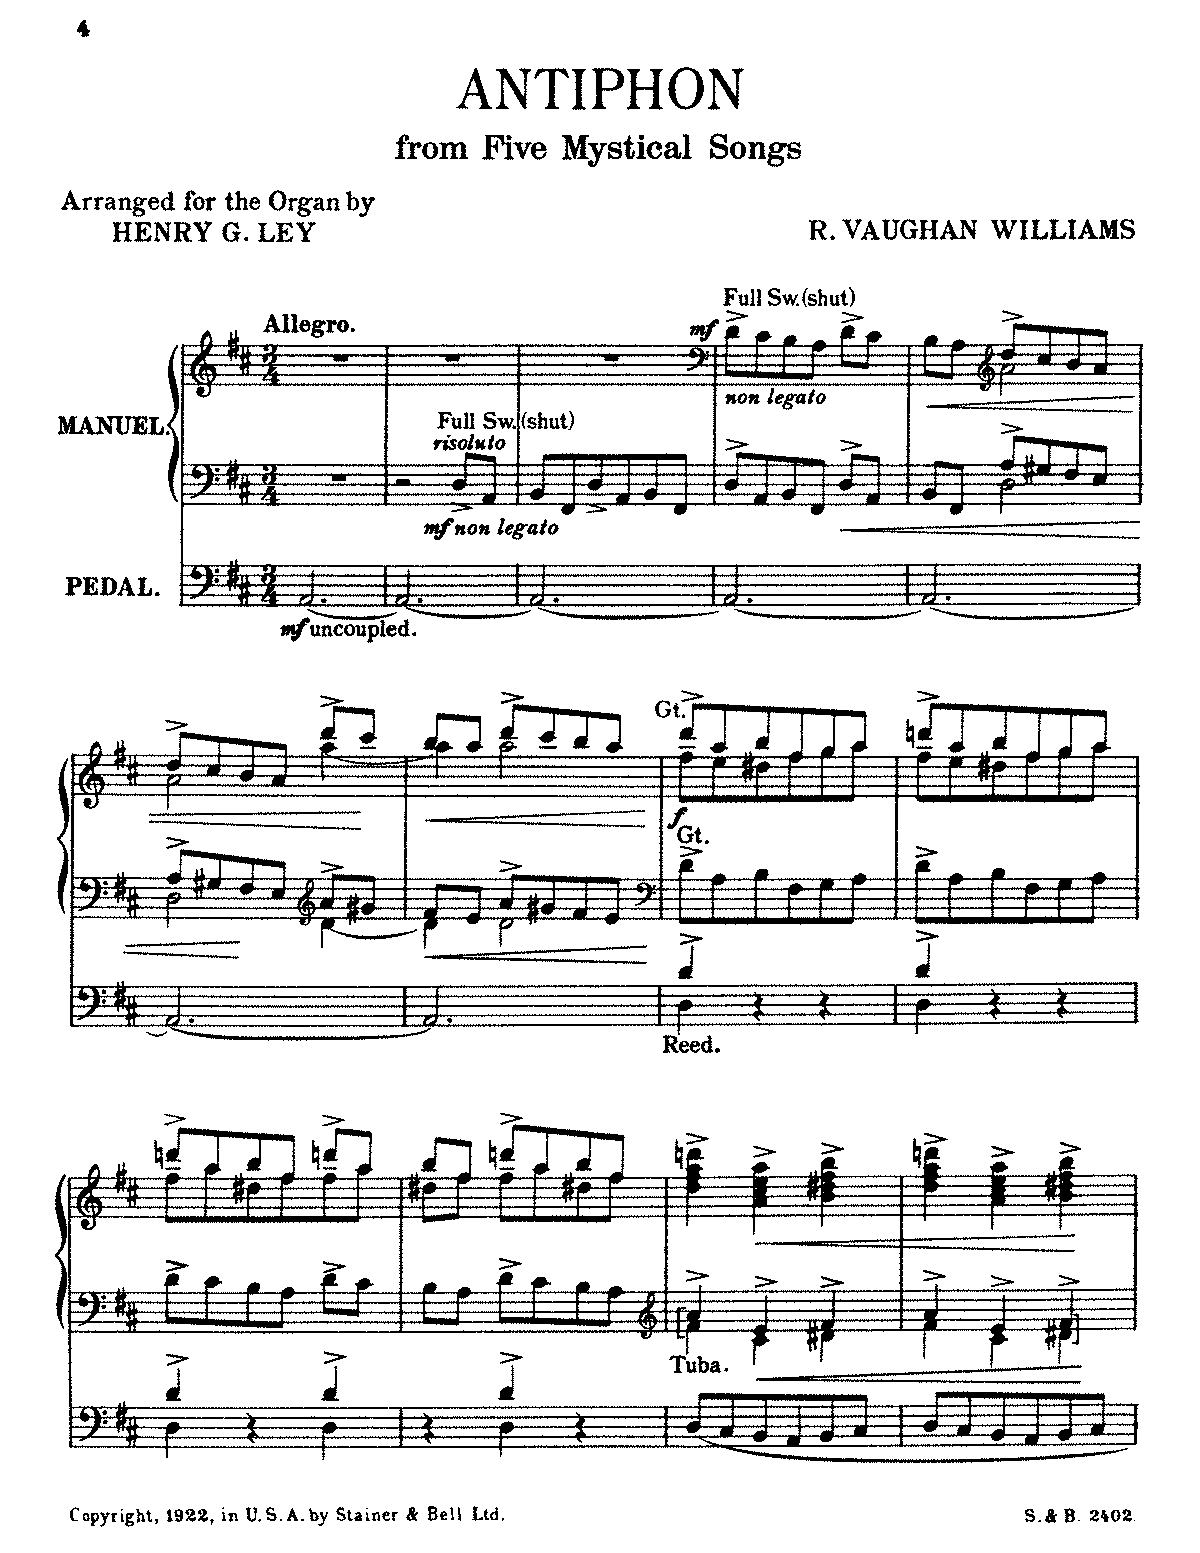 PMLP60778-Vaughan Williams-Ley 5 Mystical Songs - 5. Antiphon.pdf